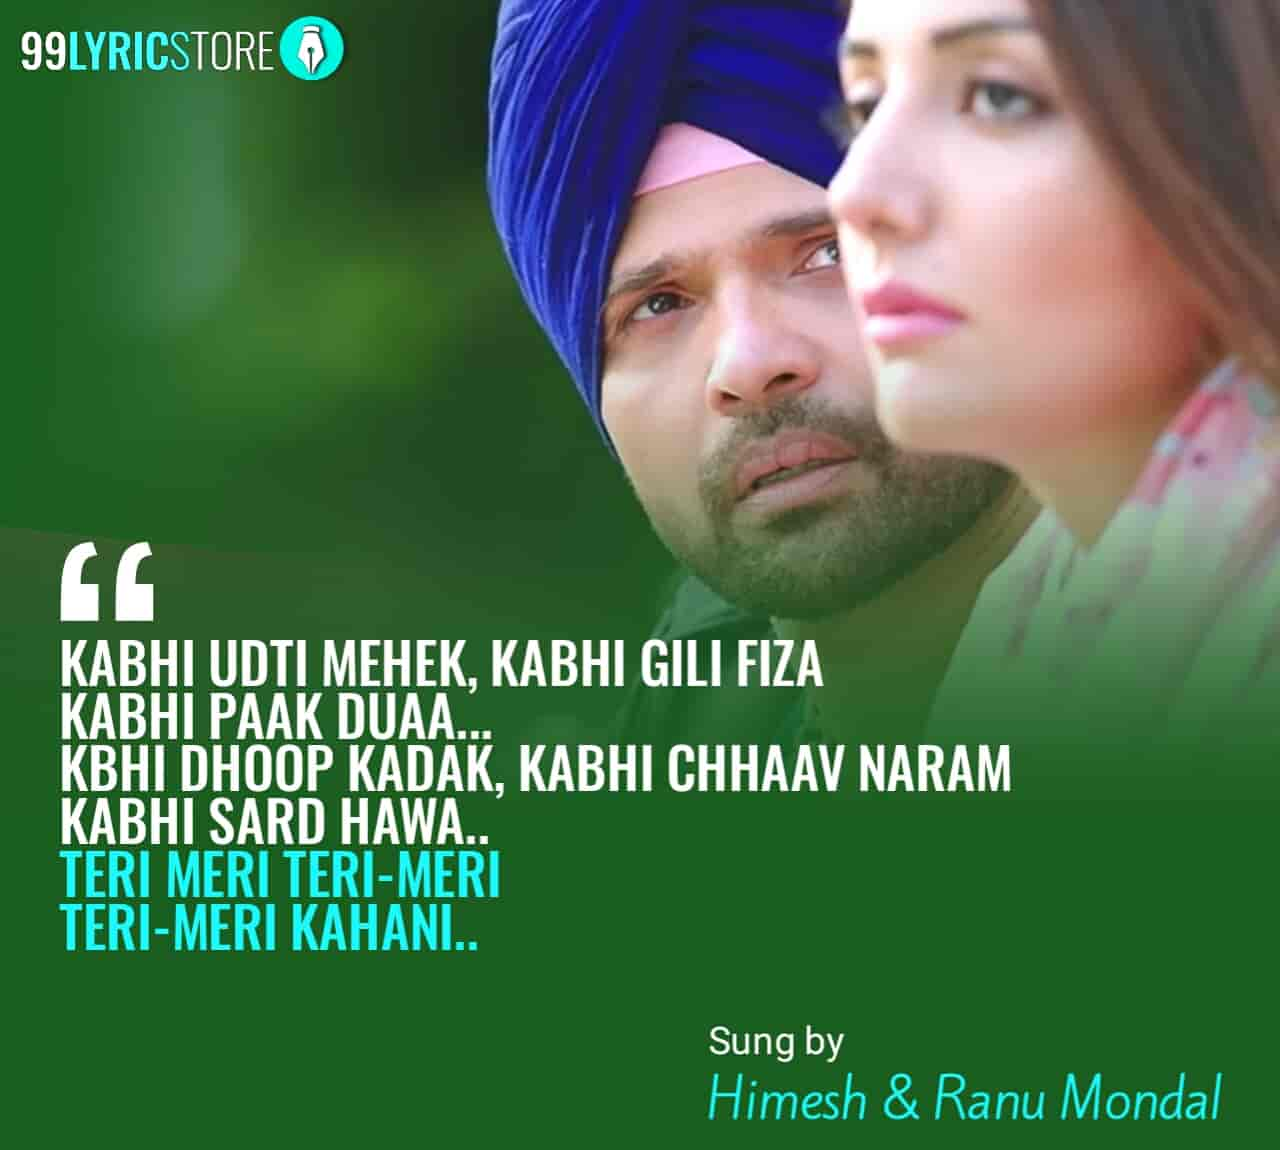 Teri Meri Kahani song by Ranu Mondal and Himesh Reshammiya